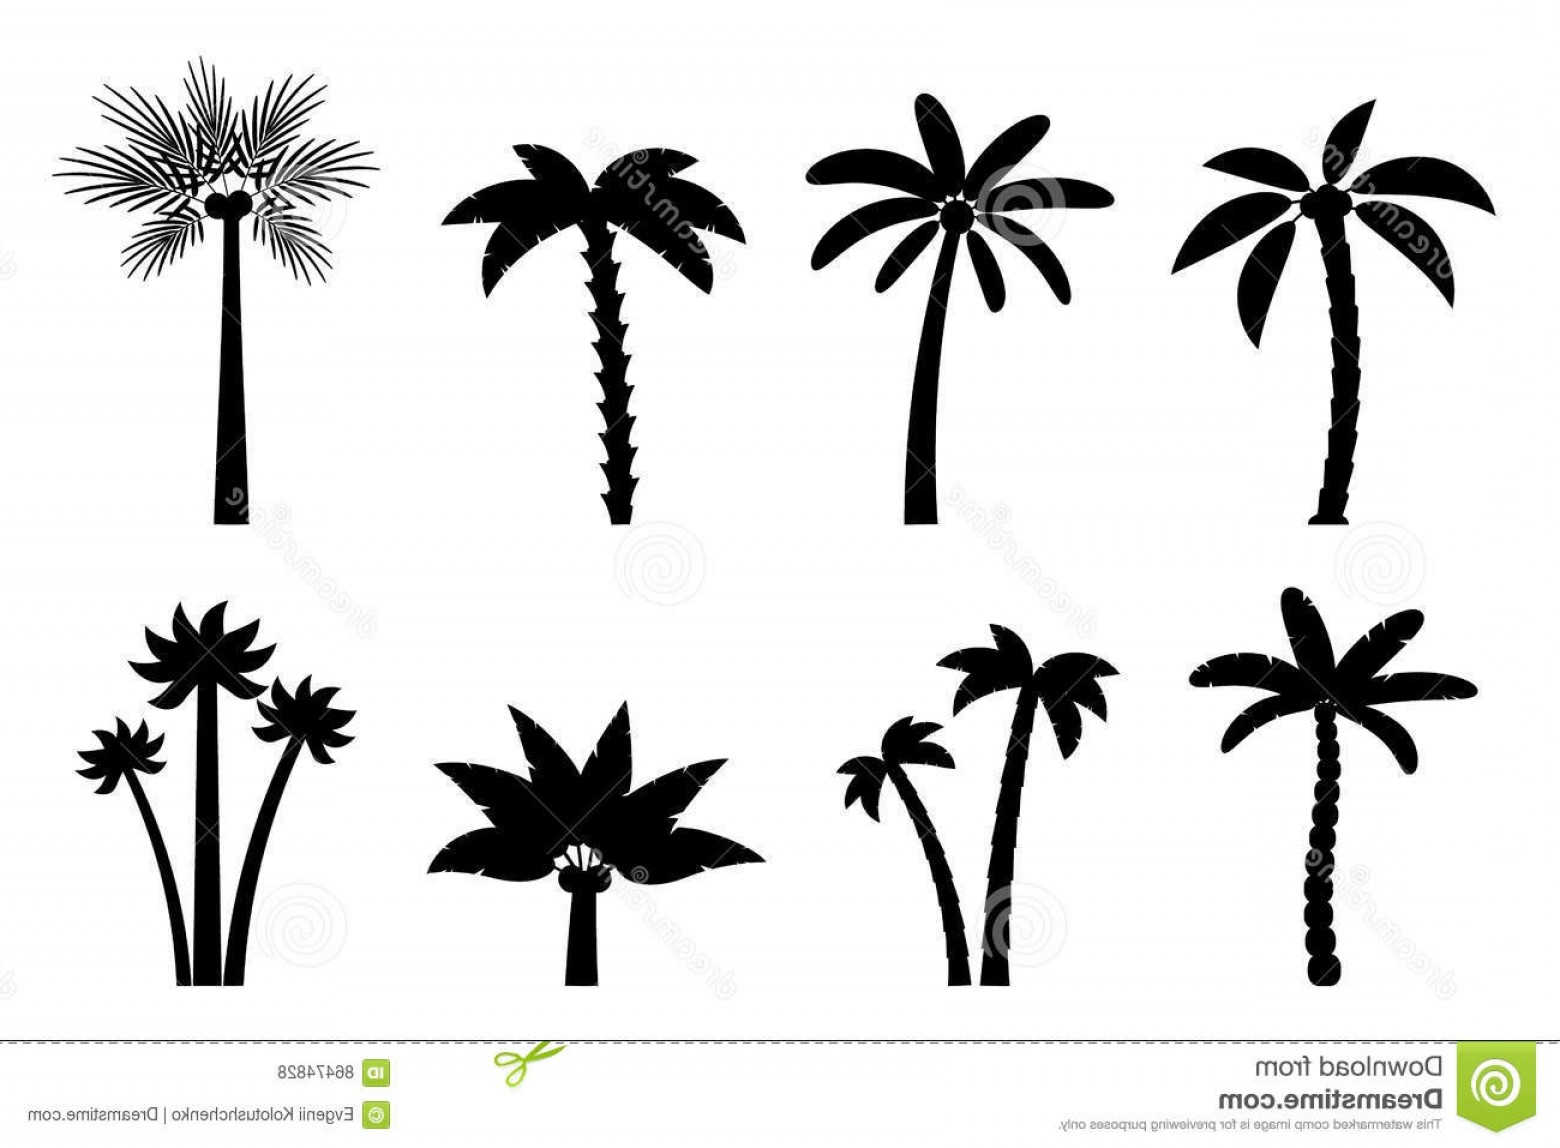 Simple Palm Tree Vector: Stock Illustration Vector Set Simple Palm Trees Flat Cartoon Black Silhouette Palms White Background Image